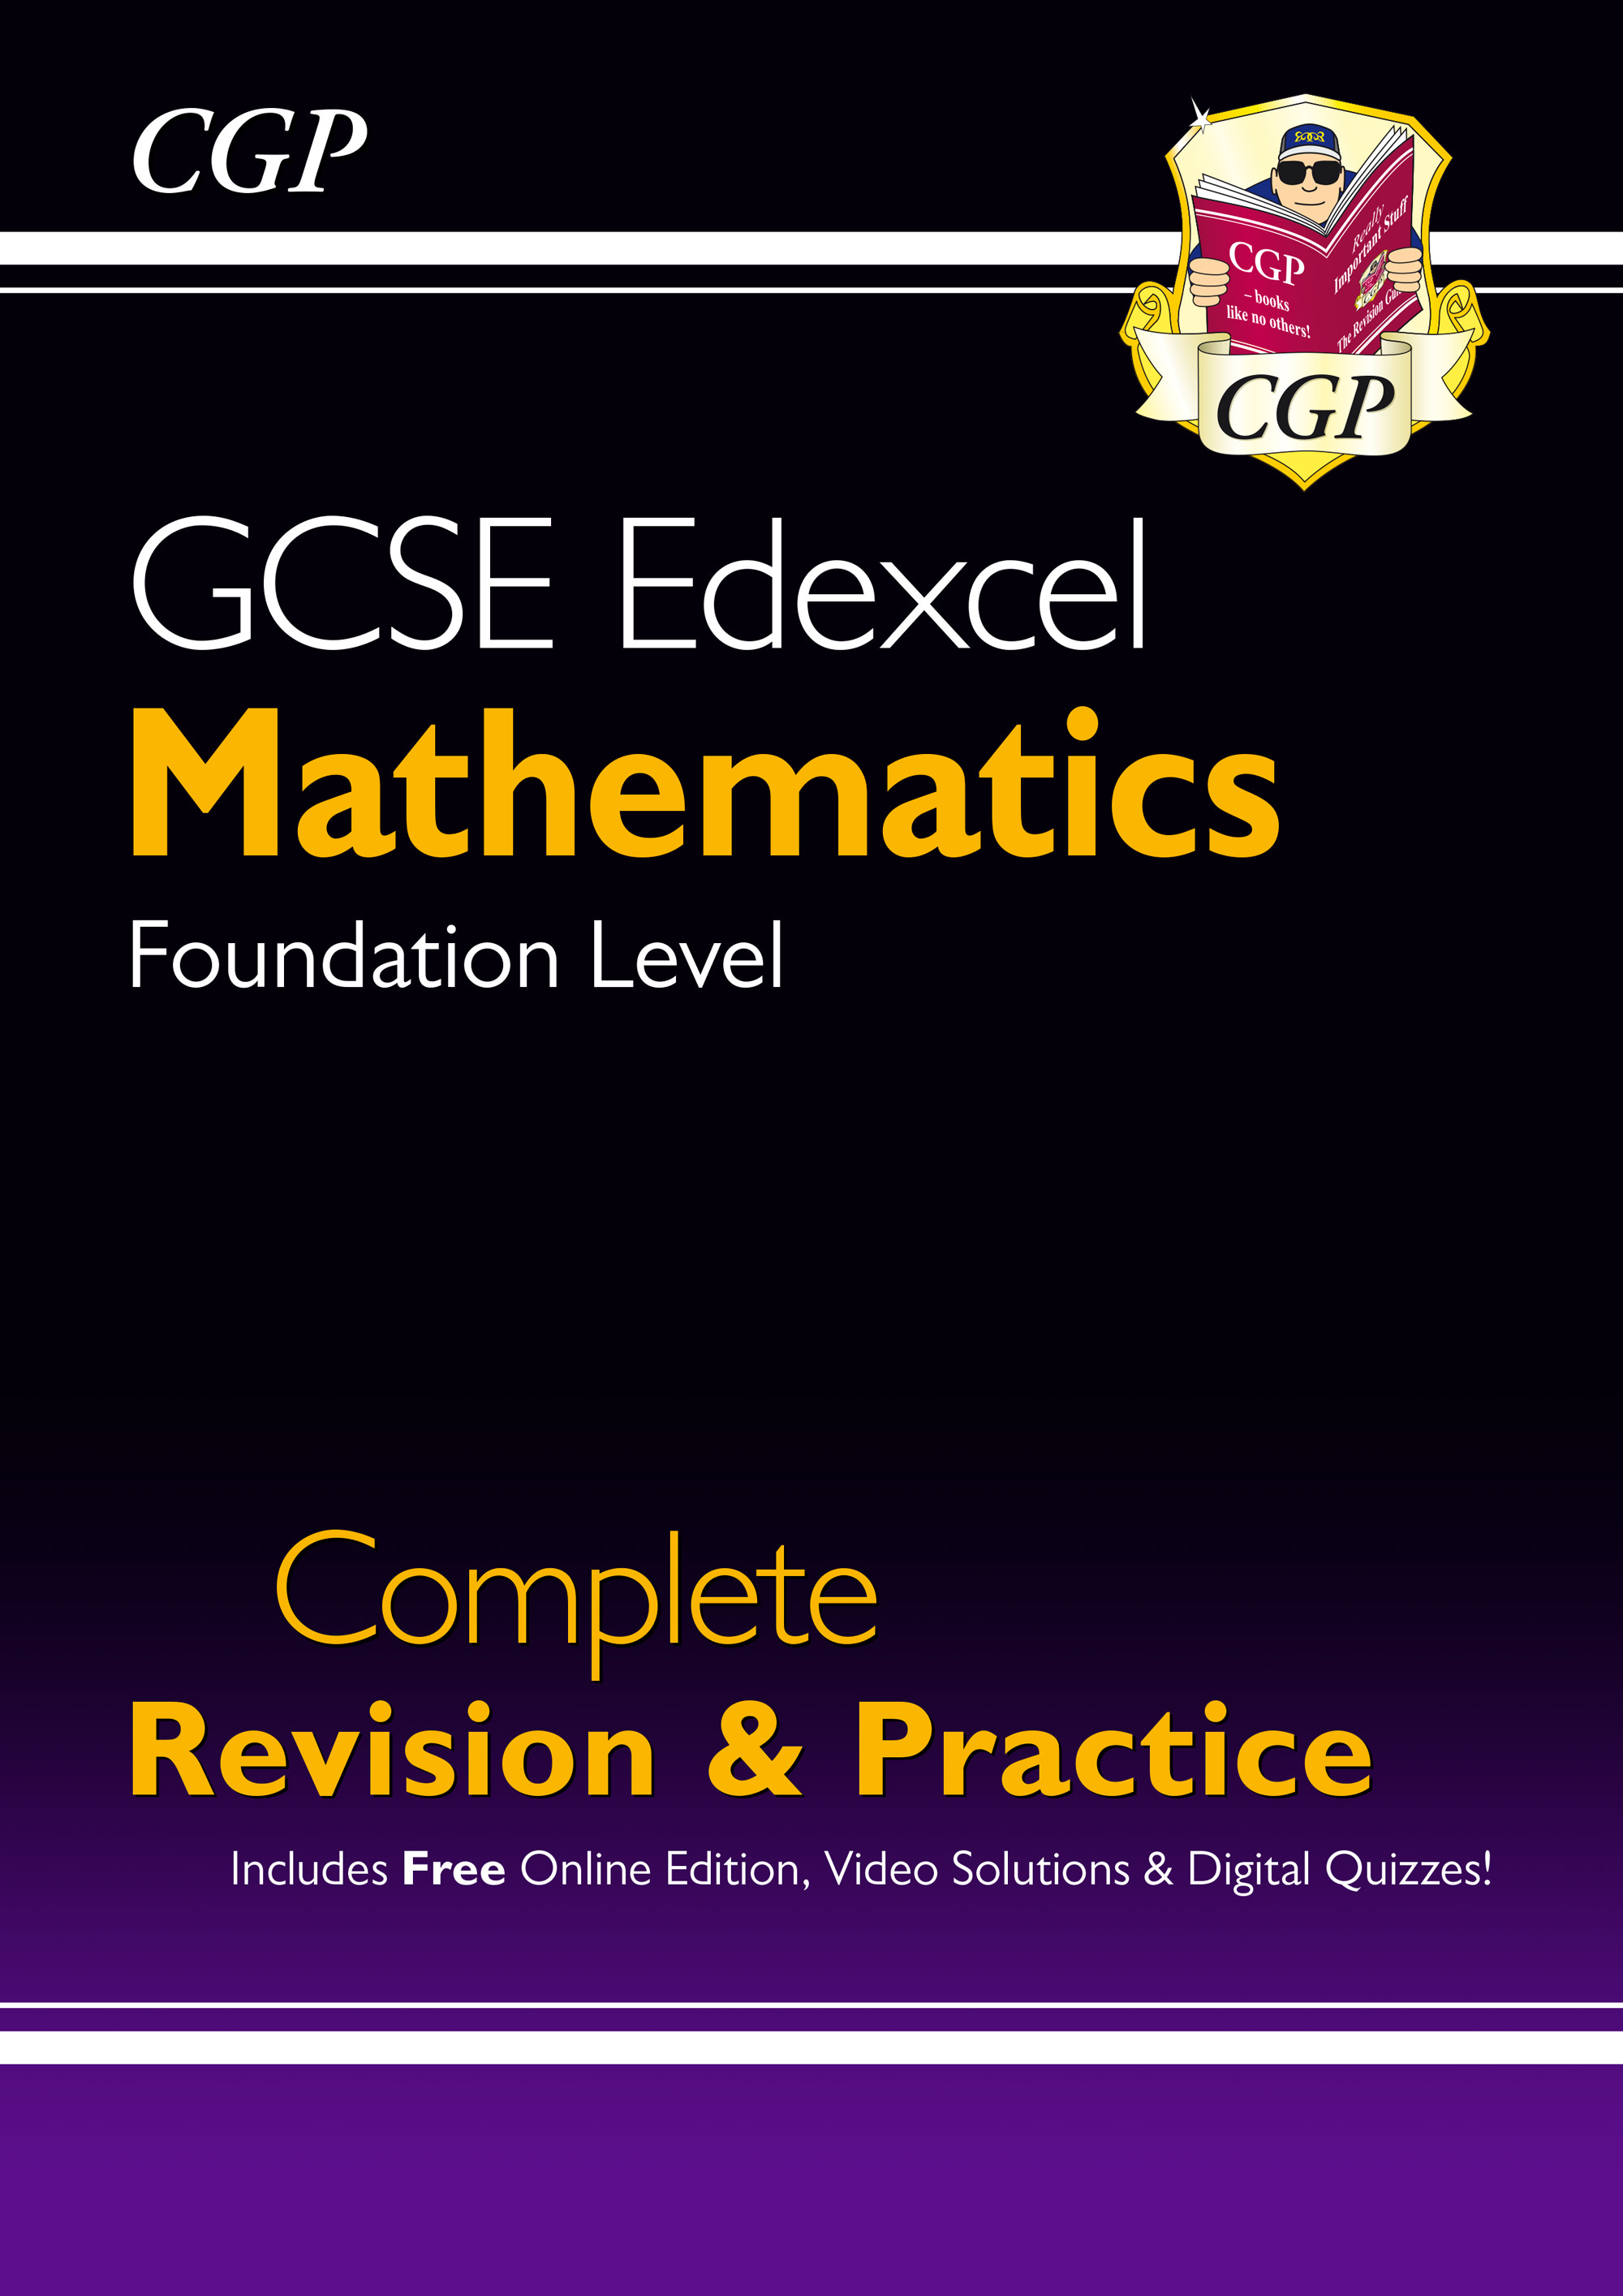 MXFS42 - New 2021 GCSE Maths Edexcel Complete Revision & Practice: Foundation inc Online Ed, Videos